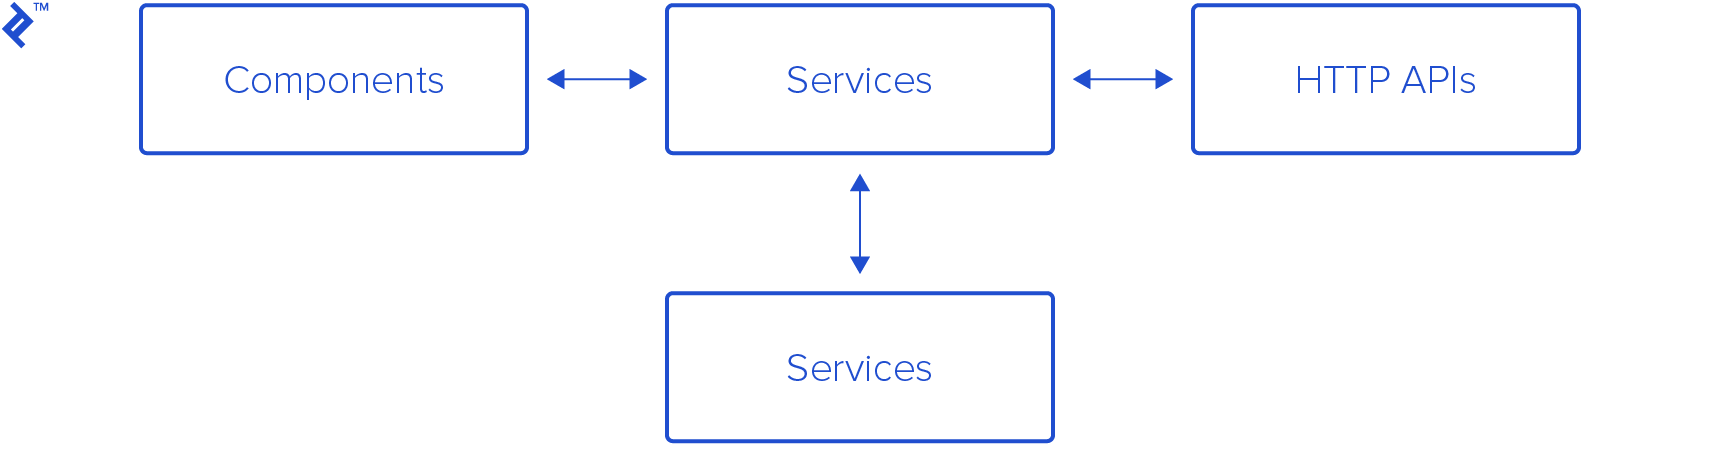 Components connect to services, which connect to other services or HTTP APIs.